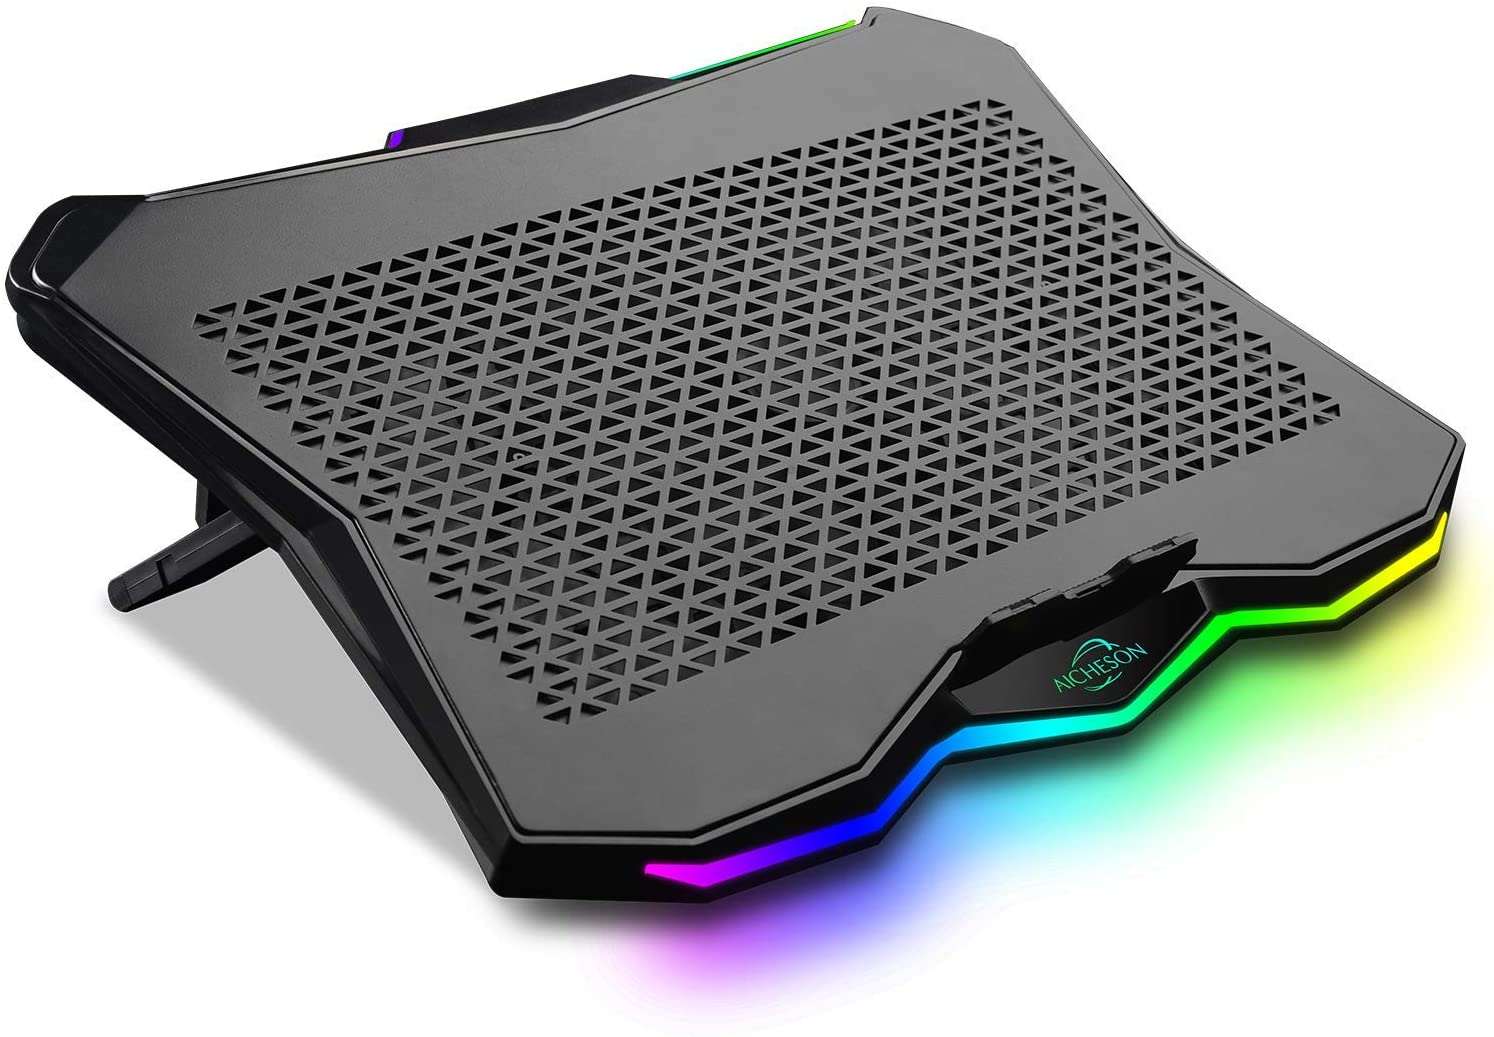 Laptop Cooling Cooler Pad with Rainbow Lights by AICHESON - Laptop Cooling Pads